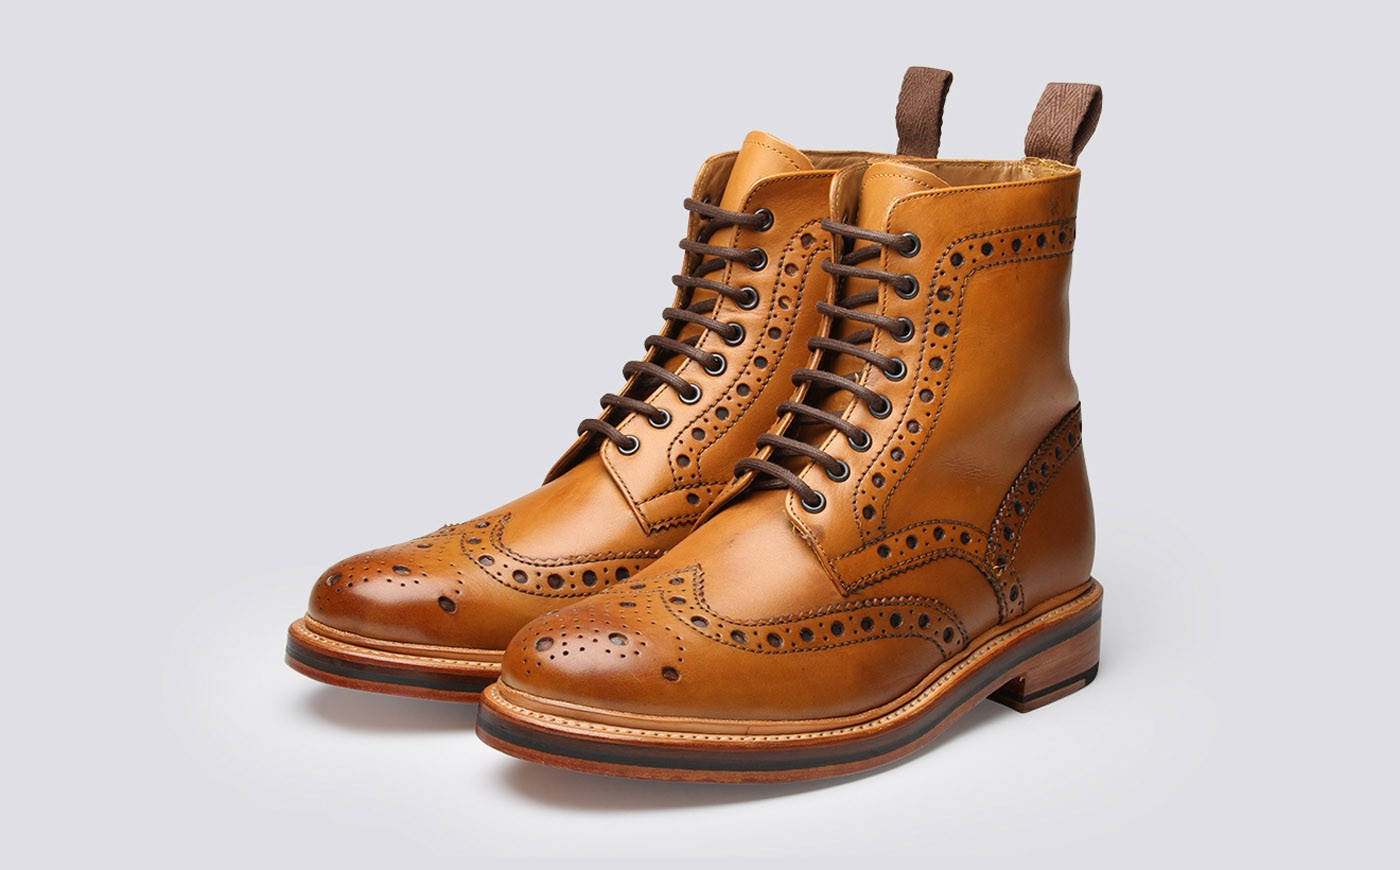 brogue boots mens brogue boot in tan calf leather with a leather sole | fred | grenson ggyhqwb